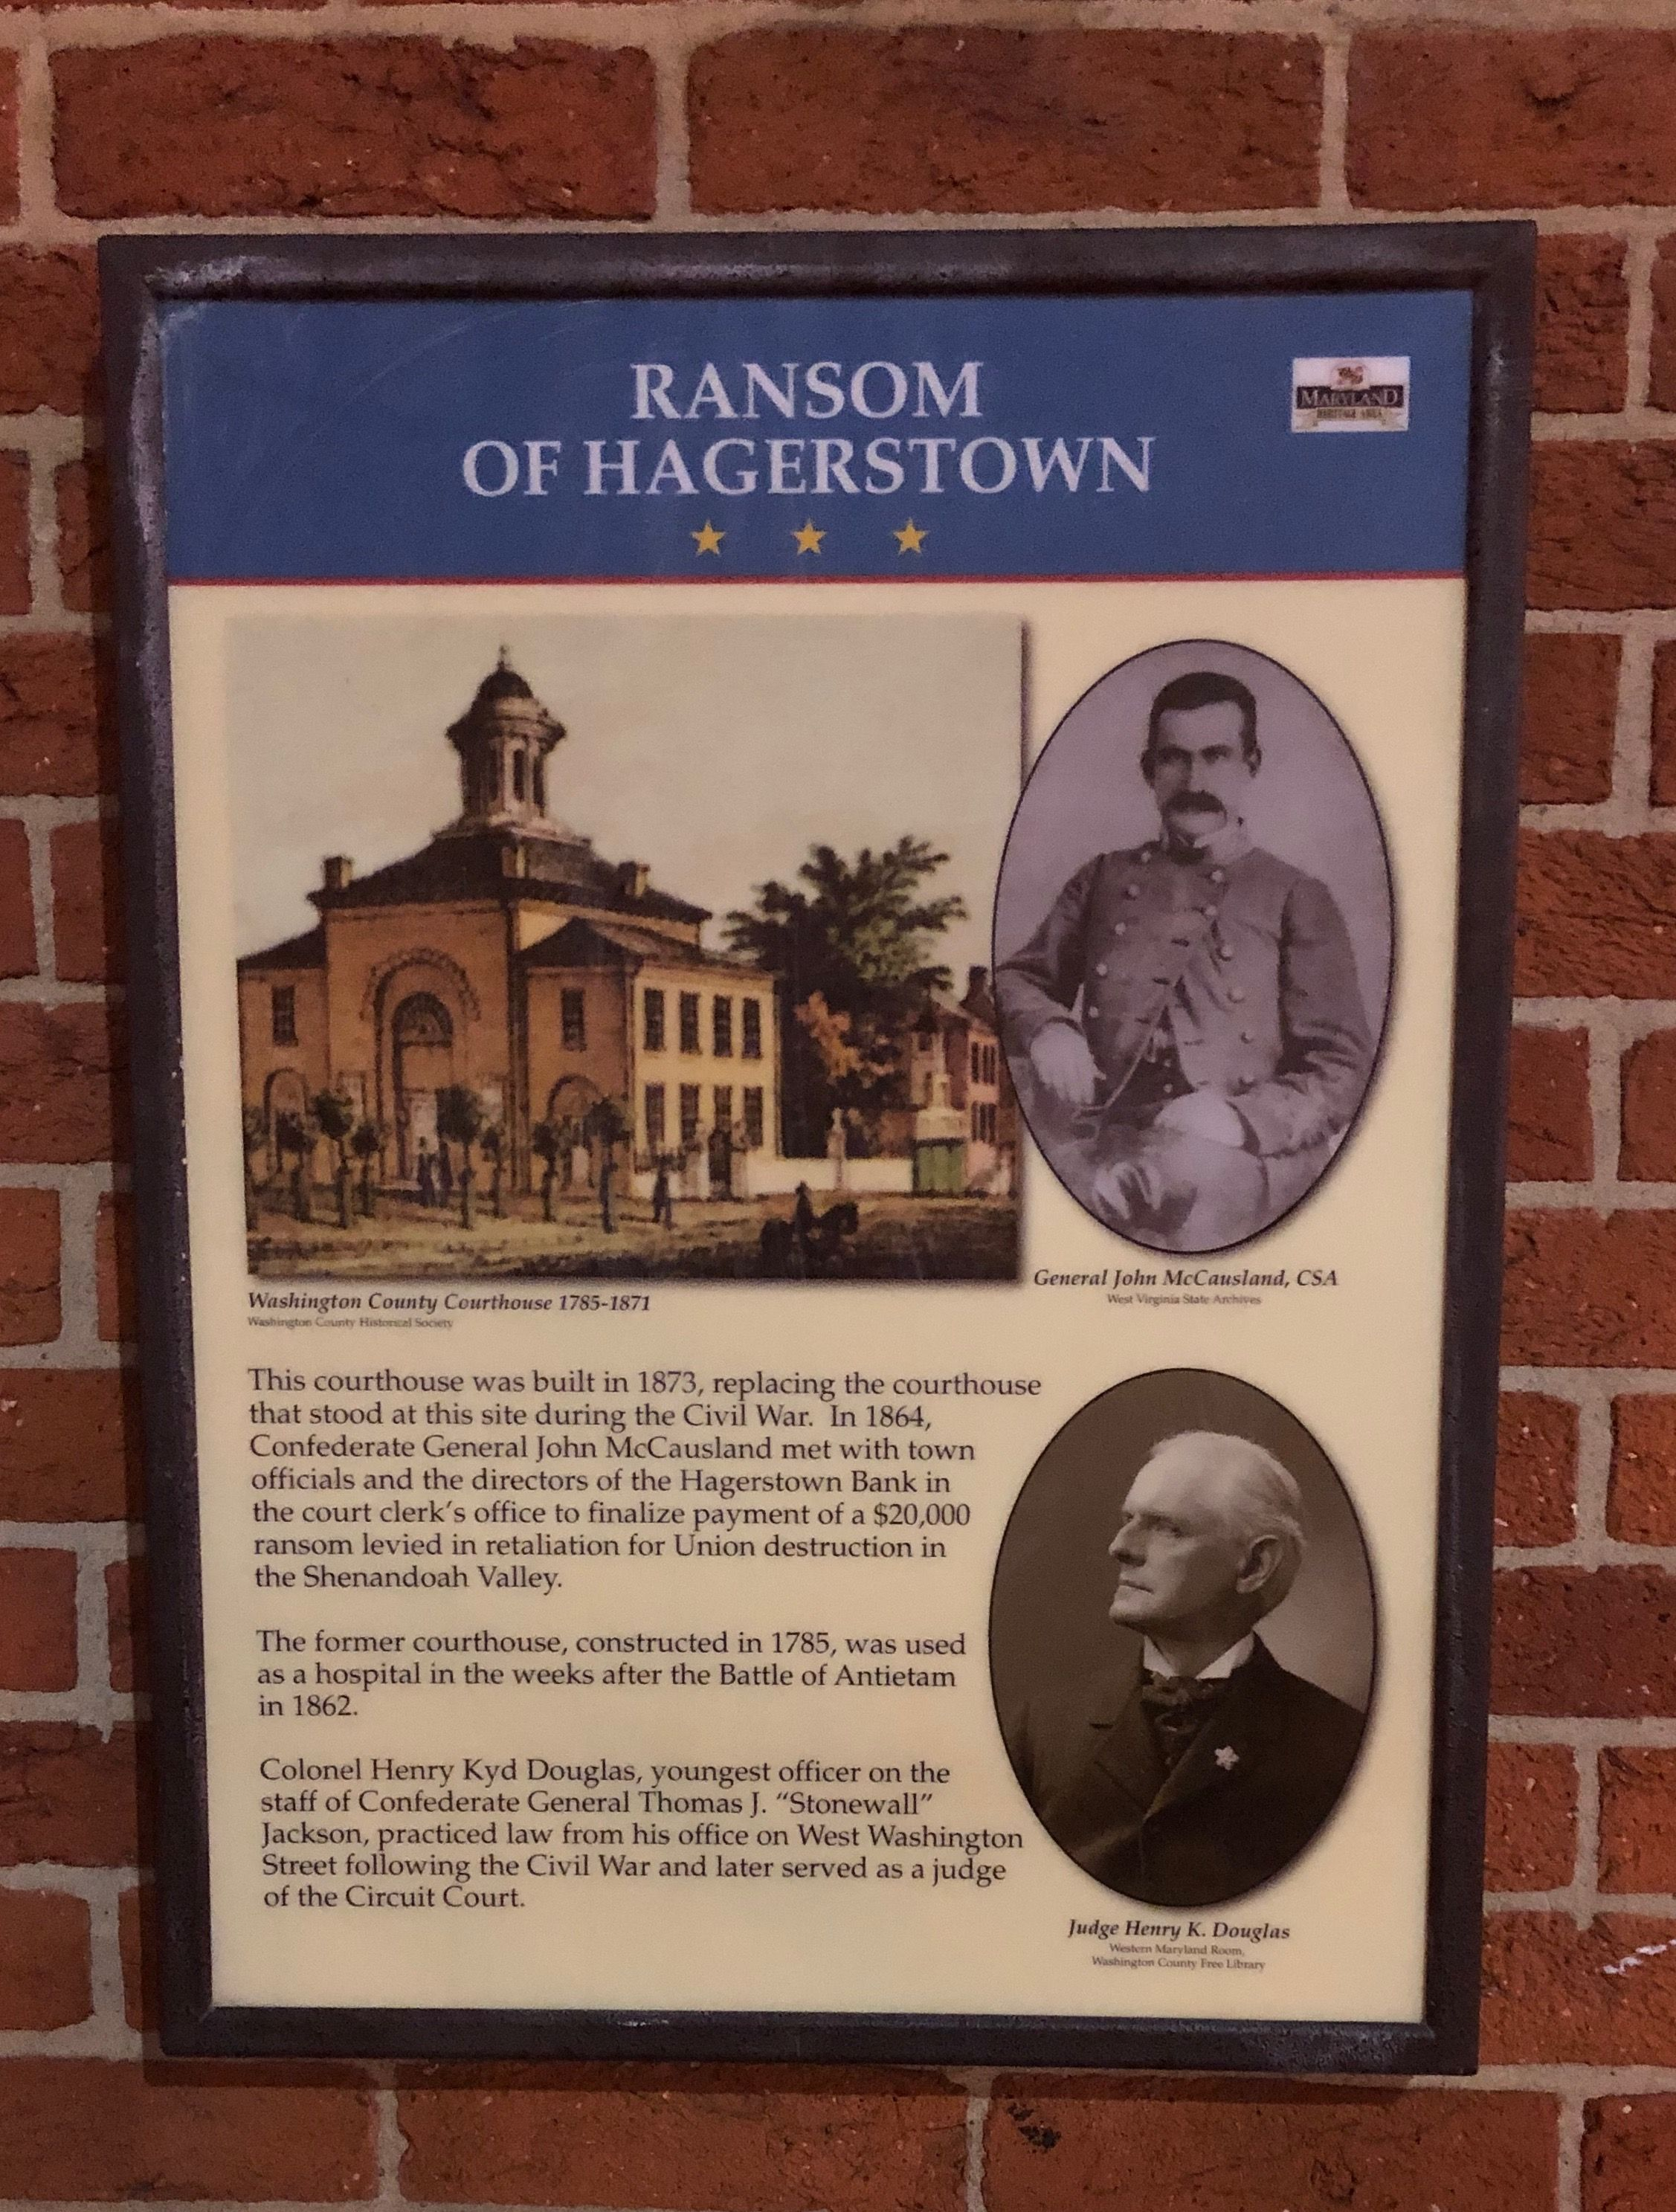 Historic Sign Ransom Of Hagerstown Maryland Paul Chandler April